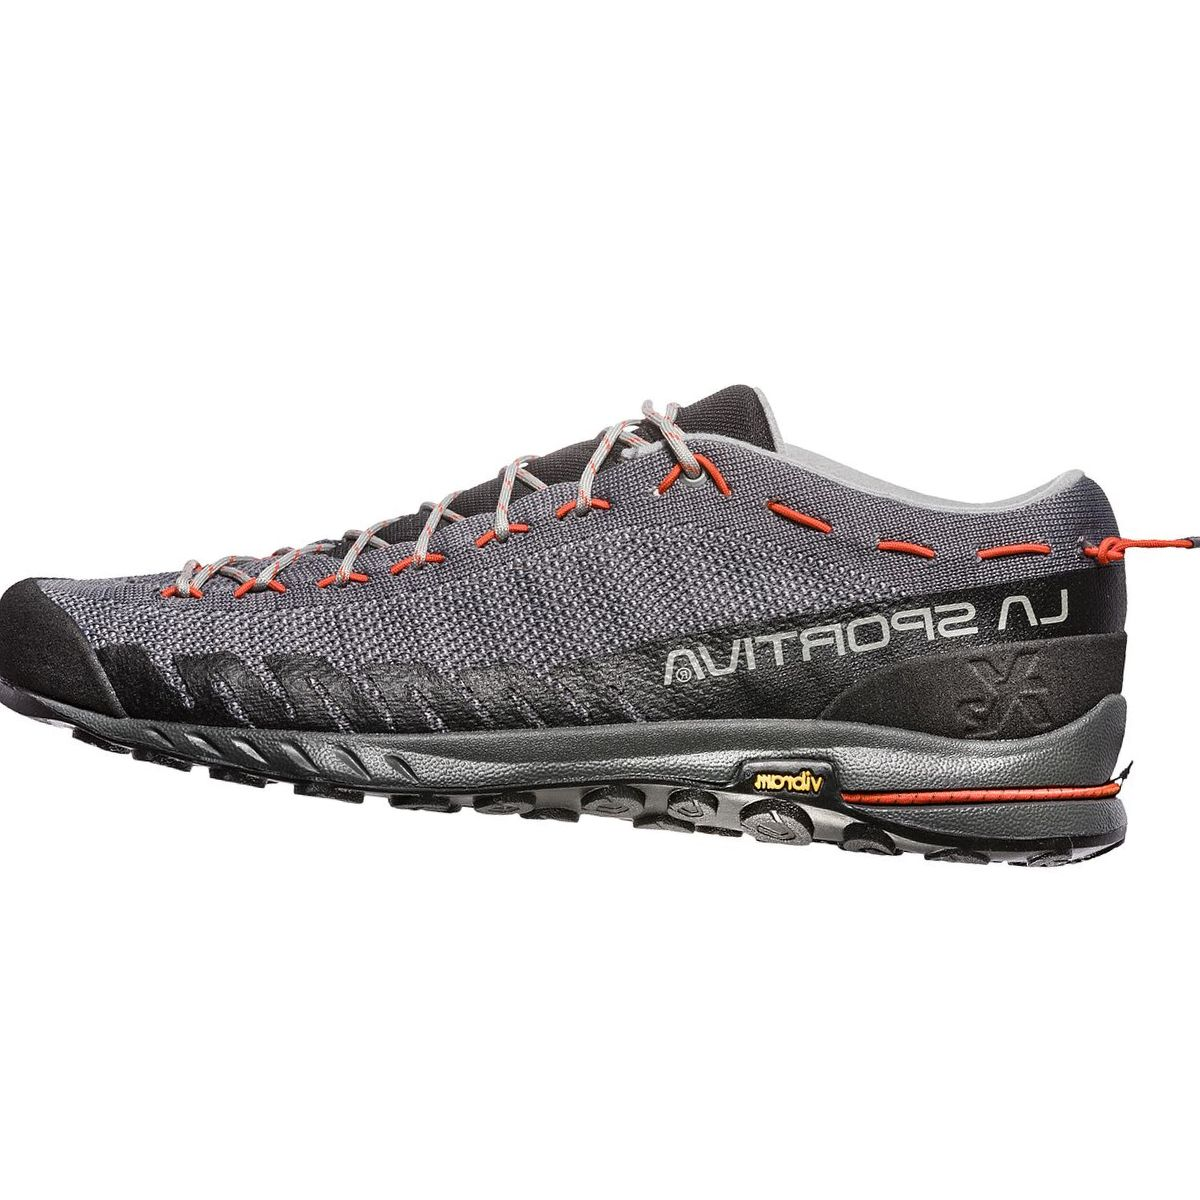 La Sportiva TX2 Approach Shoe - Men's